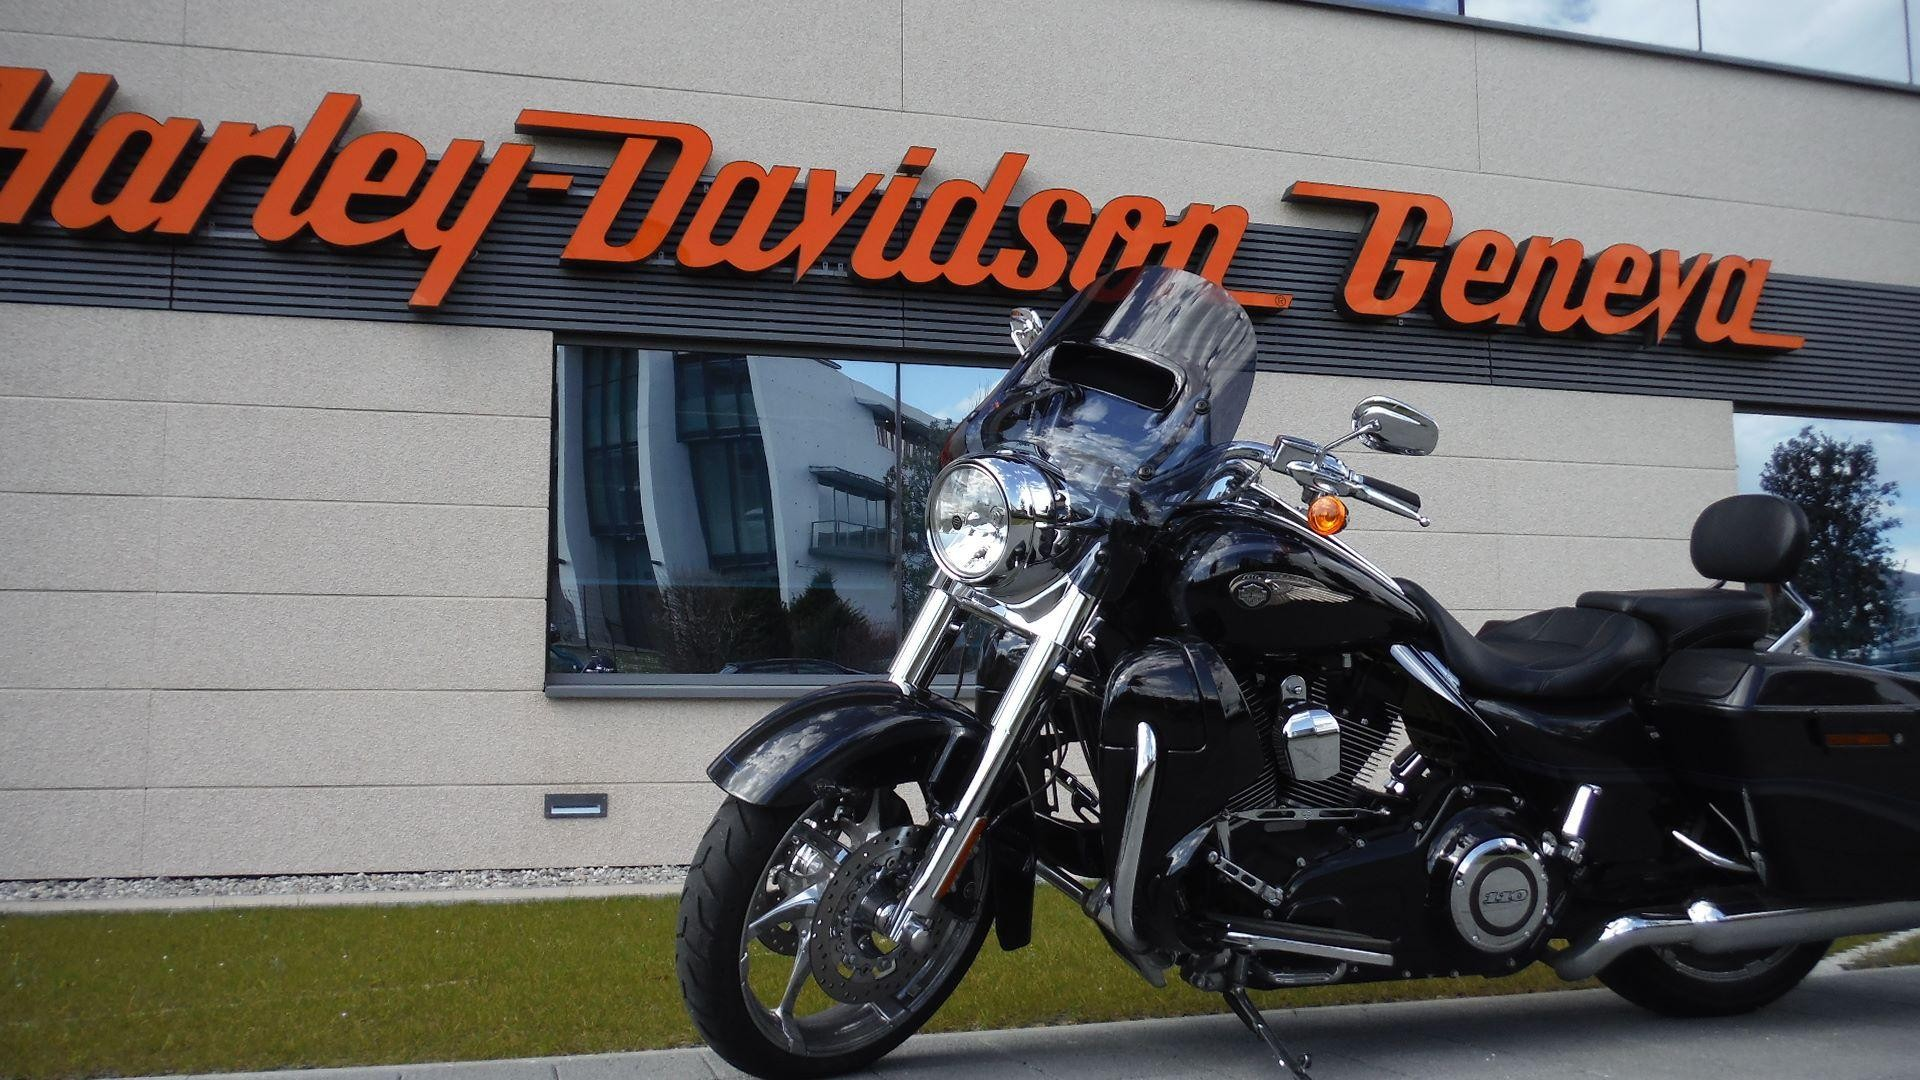 harley davidson flhrse5 cvo 1801 road king anniv abs harley davidson geneva plan les ouates. Black Bedroom Furniture Sets. Home Design Ideas